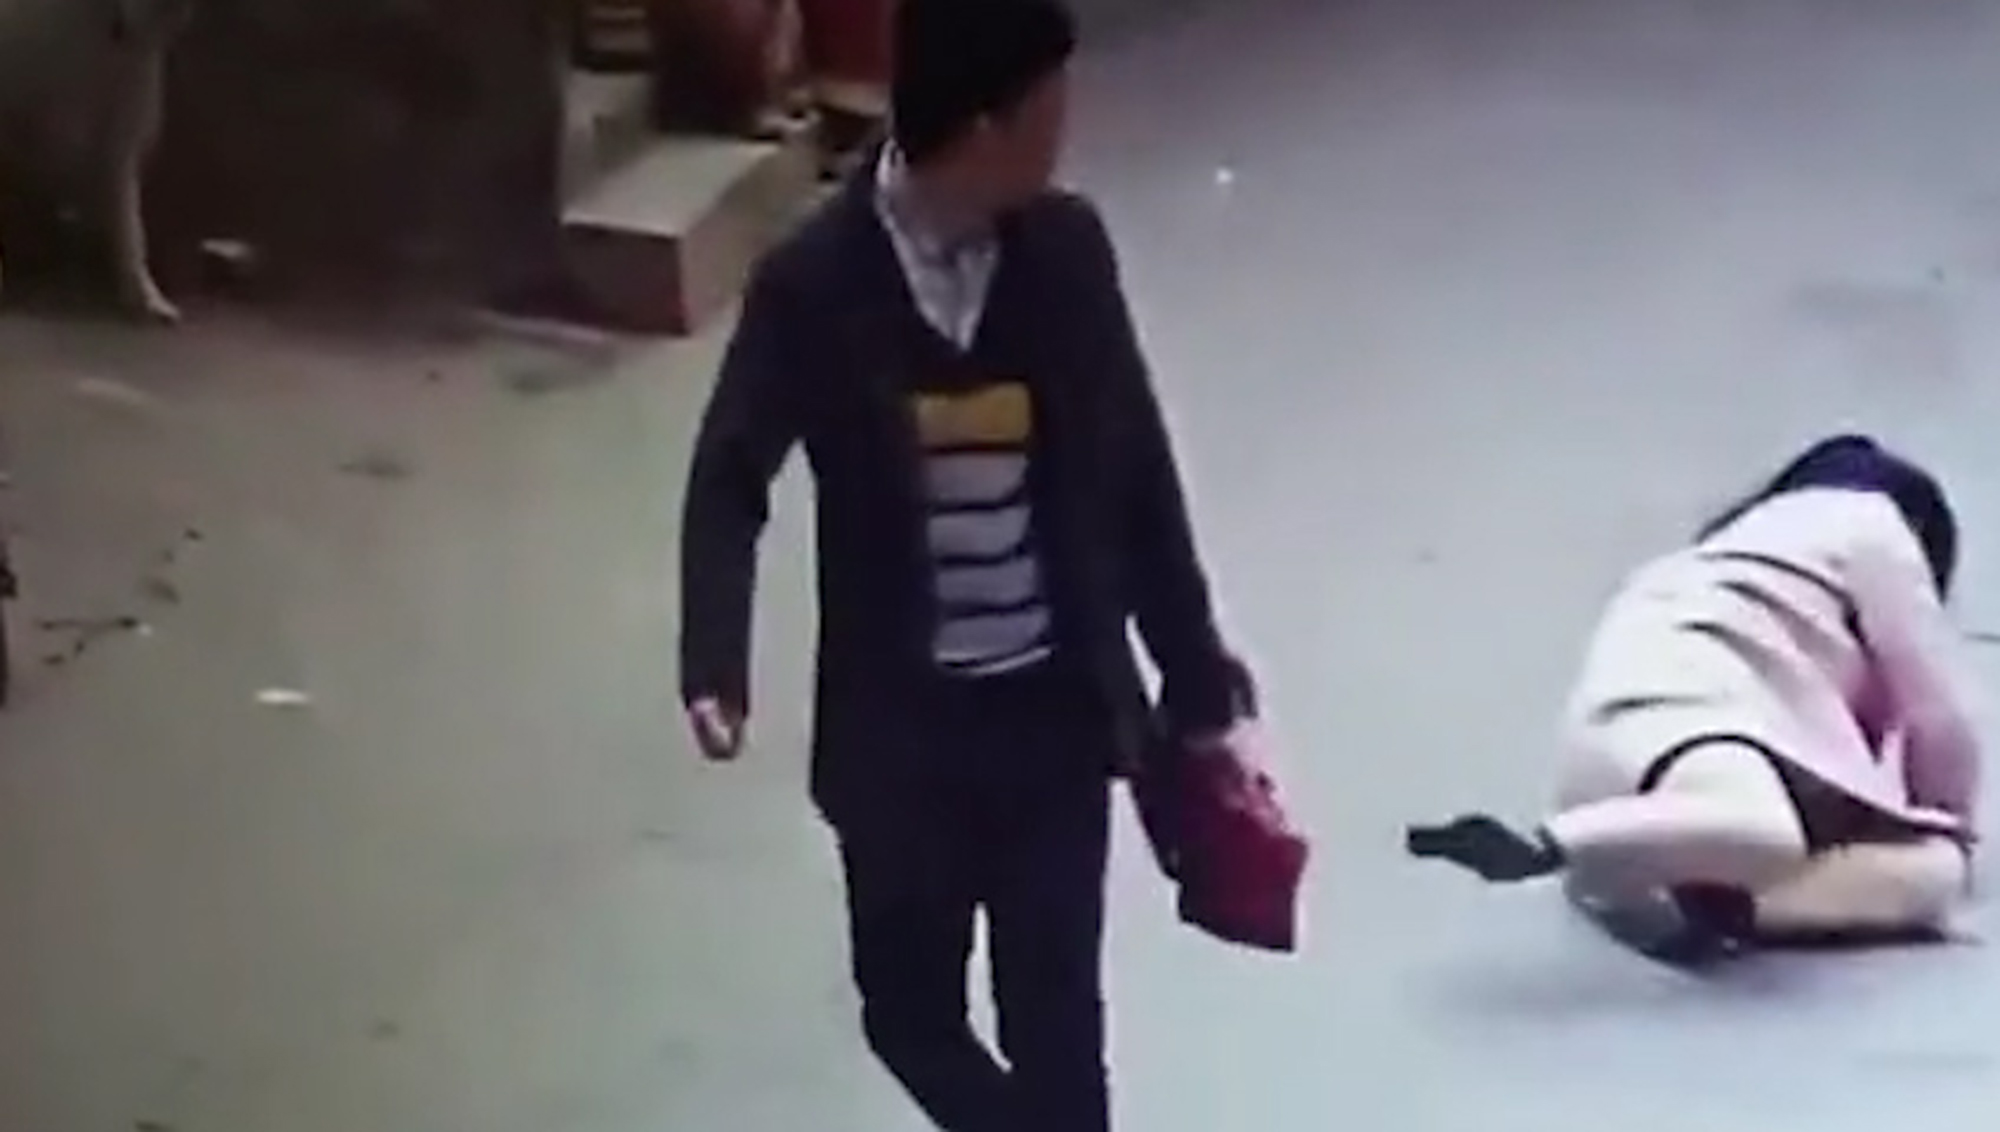 Shop Owner Travels 530 Miles To Punch Woman Who Left Bad Review AsiaWire VendorBeating 04 1